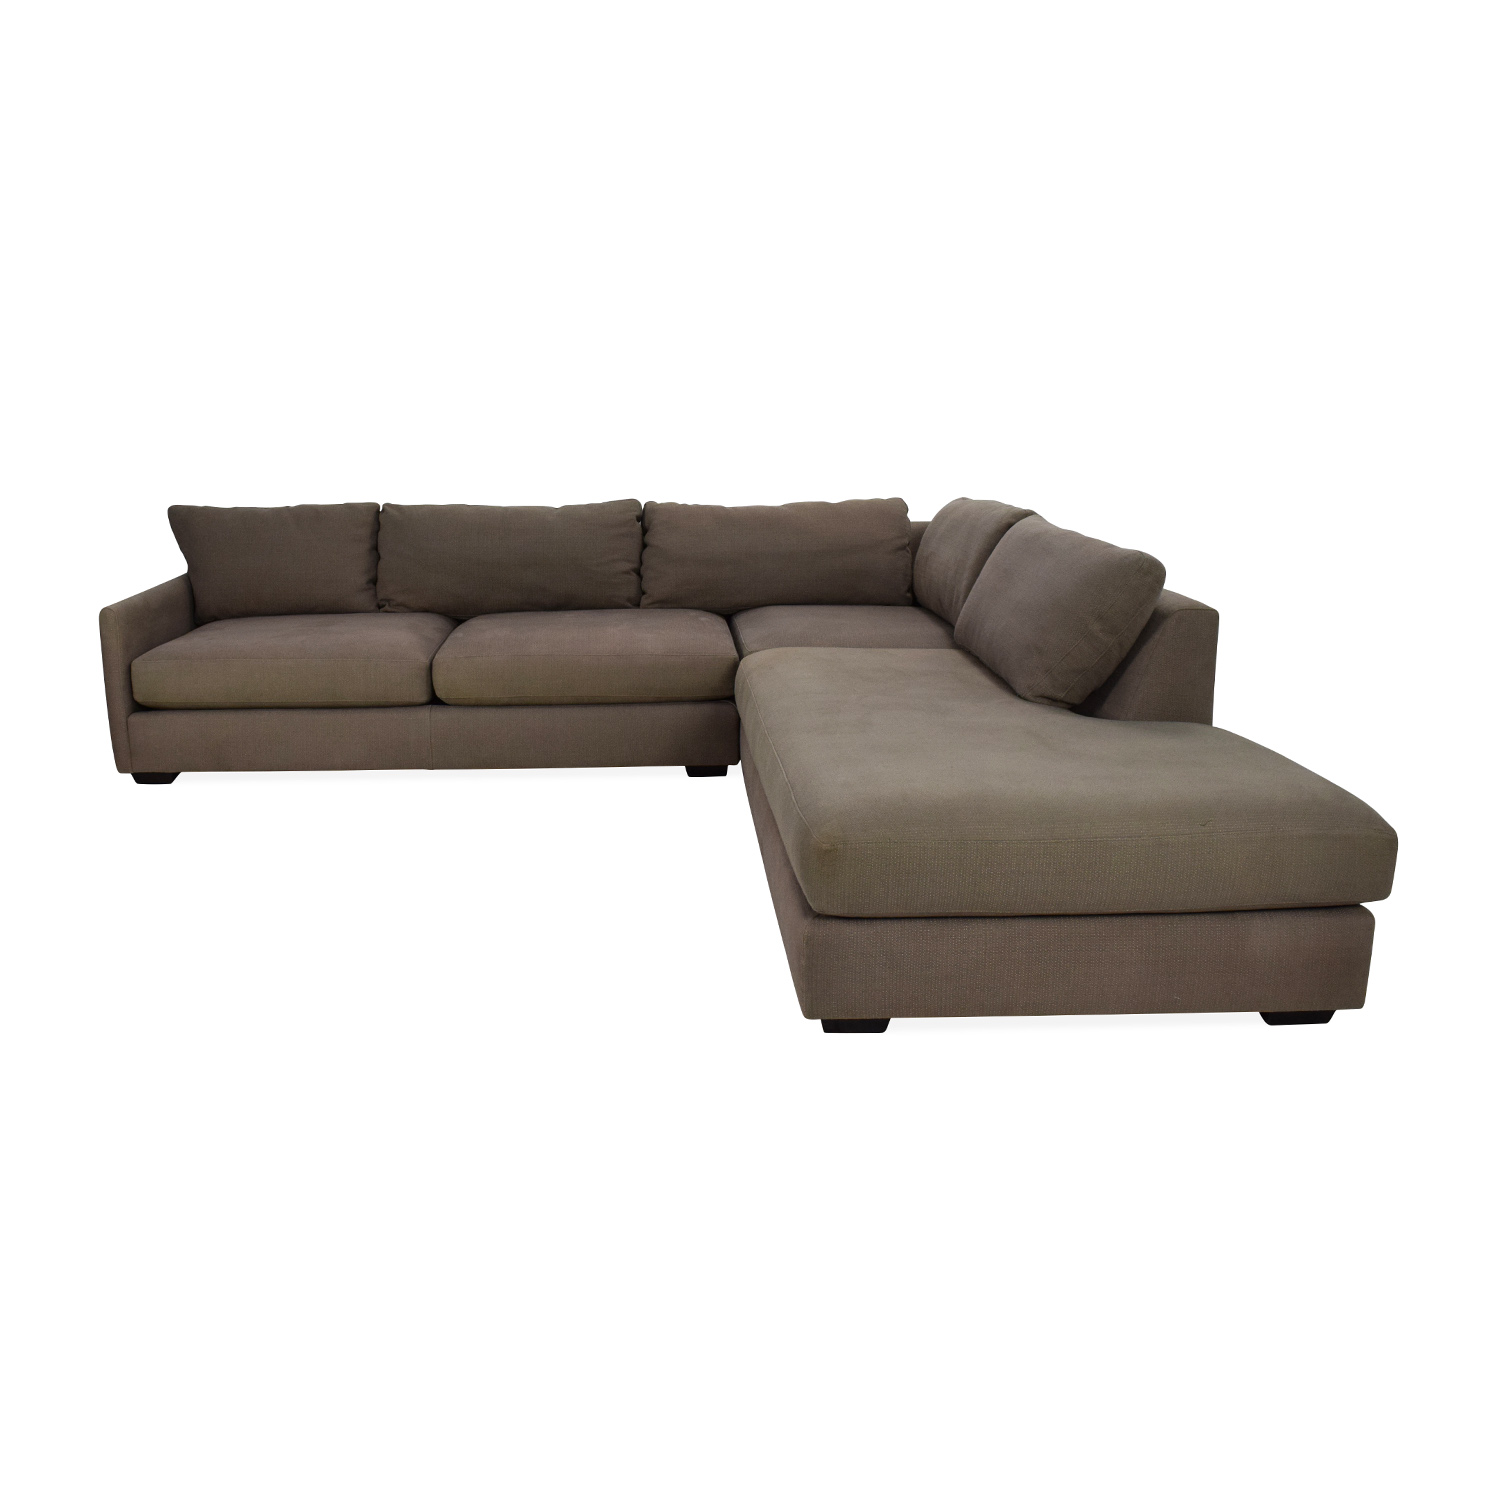 shop Crate and Barrel Crate & Barrel Domino Sectional Sofa online